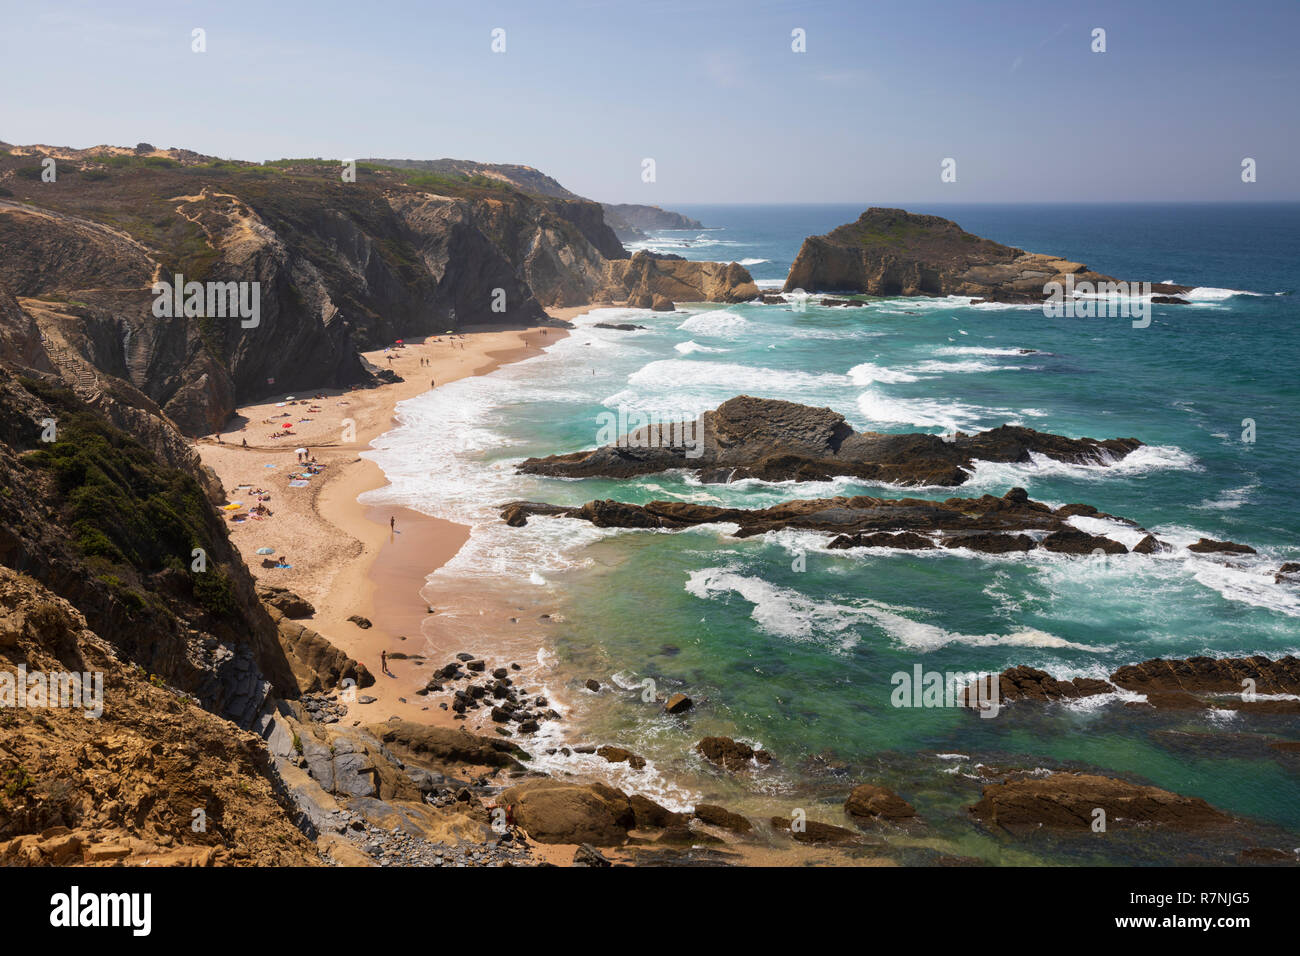 Praia dos Alteirinhos and view along rugged Atlantic coastline, Zambujeira do Mar, Alentejo region, Portugal, Europe - Stock Image